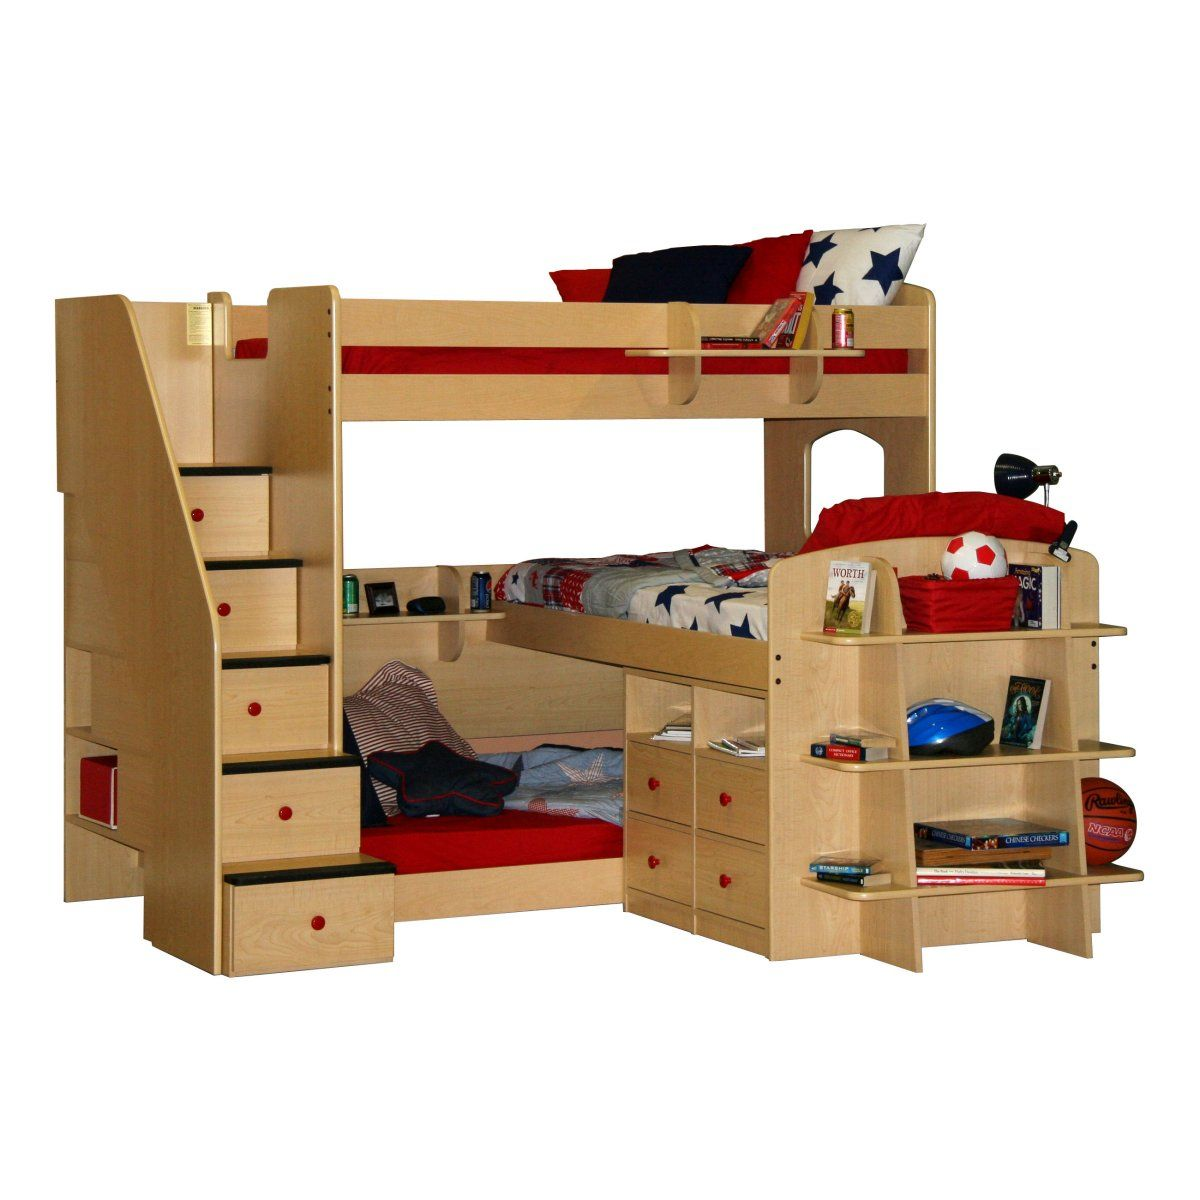 Loft bed with desk and trundle  DIY Triple Bunk Bed Plans  Triple Bunk Berg Furniture said Iull